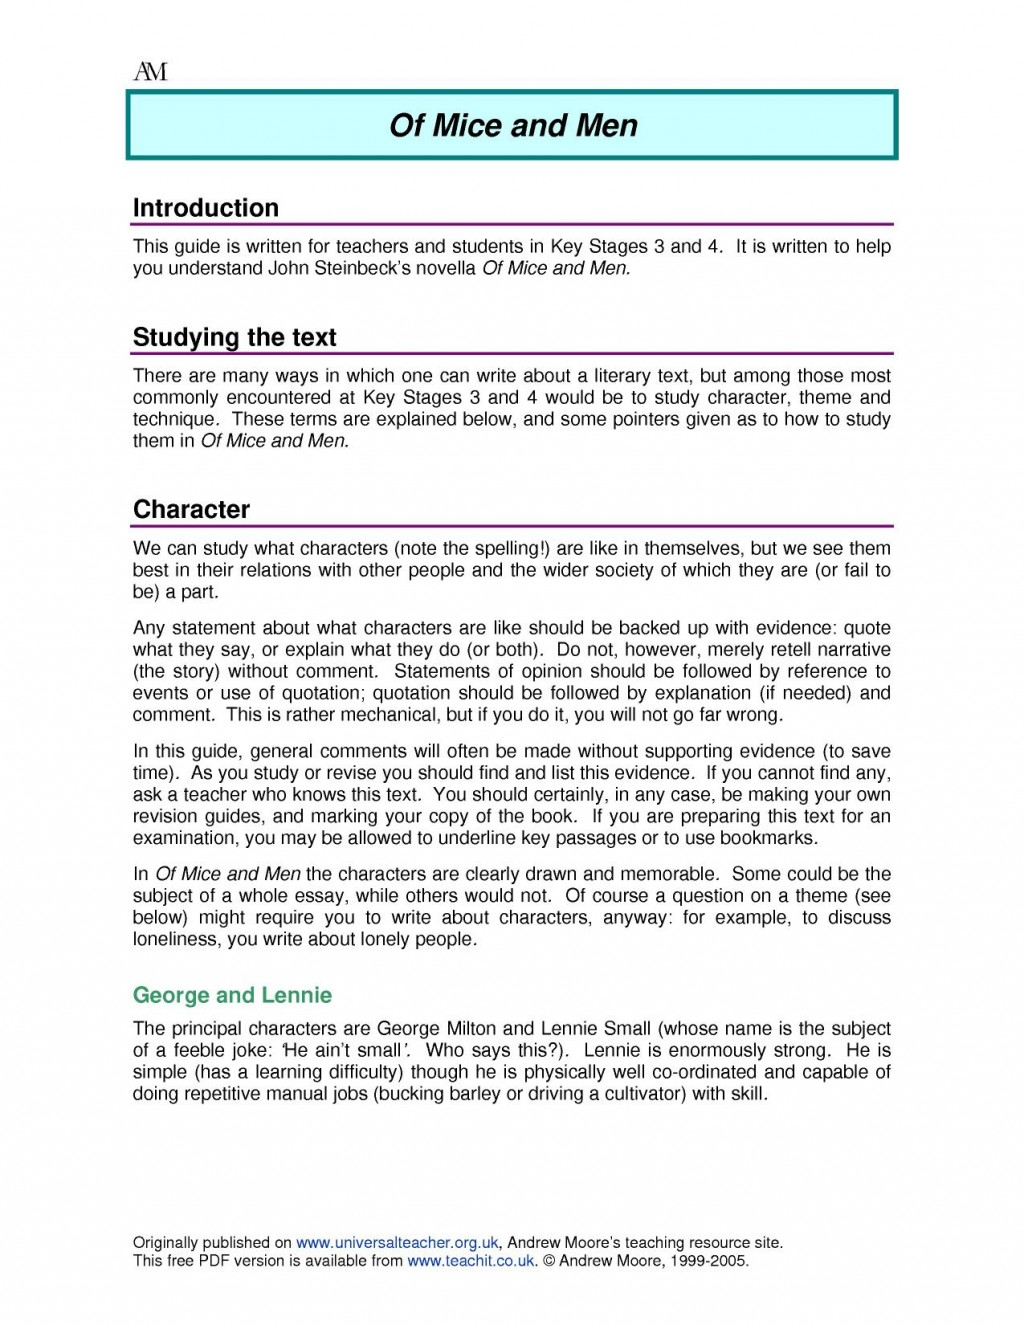 004 Essay Example How To Write An On Characterization Lesson Plan Writing Outlining Analysis X Characters Paper Astounding A Research Large